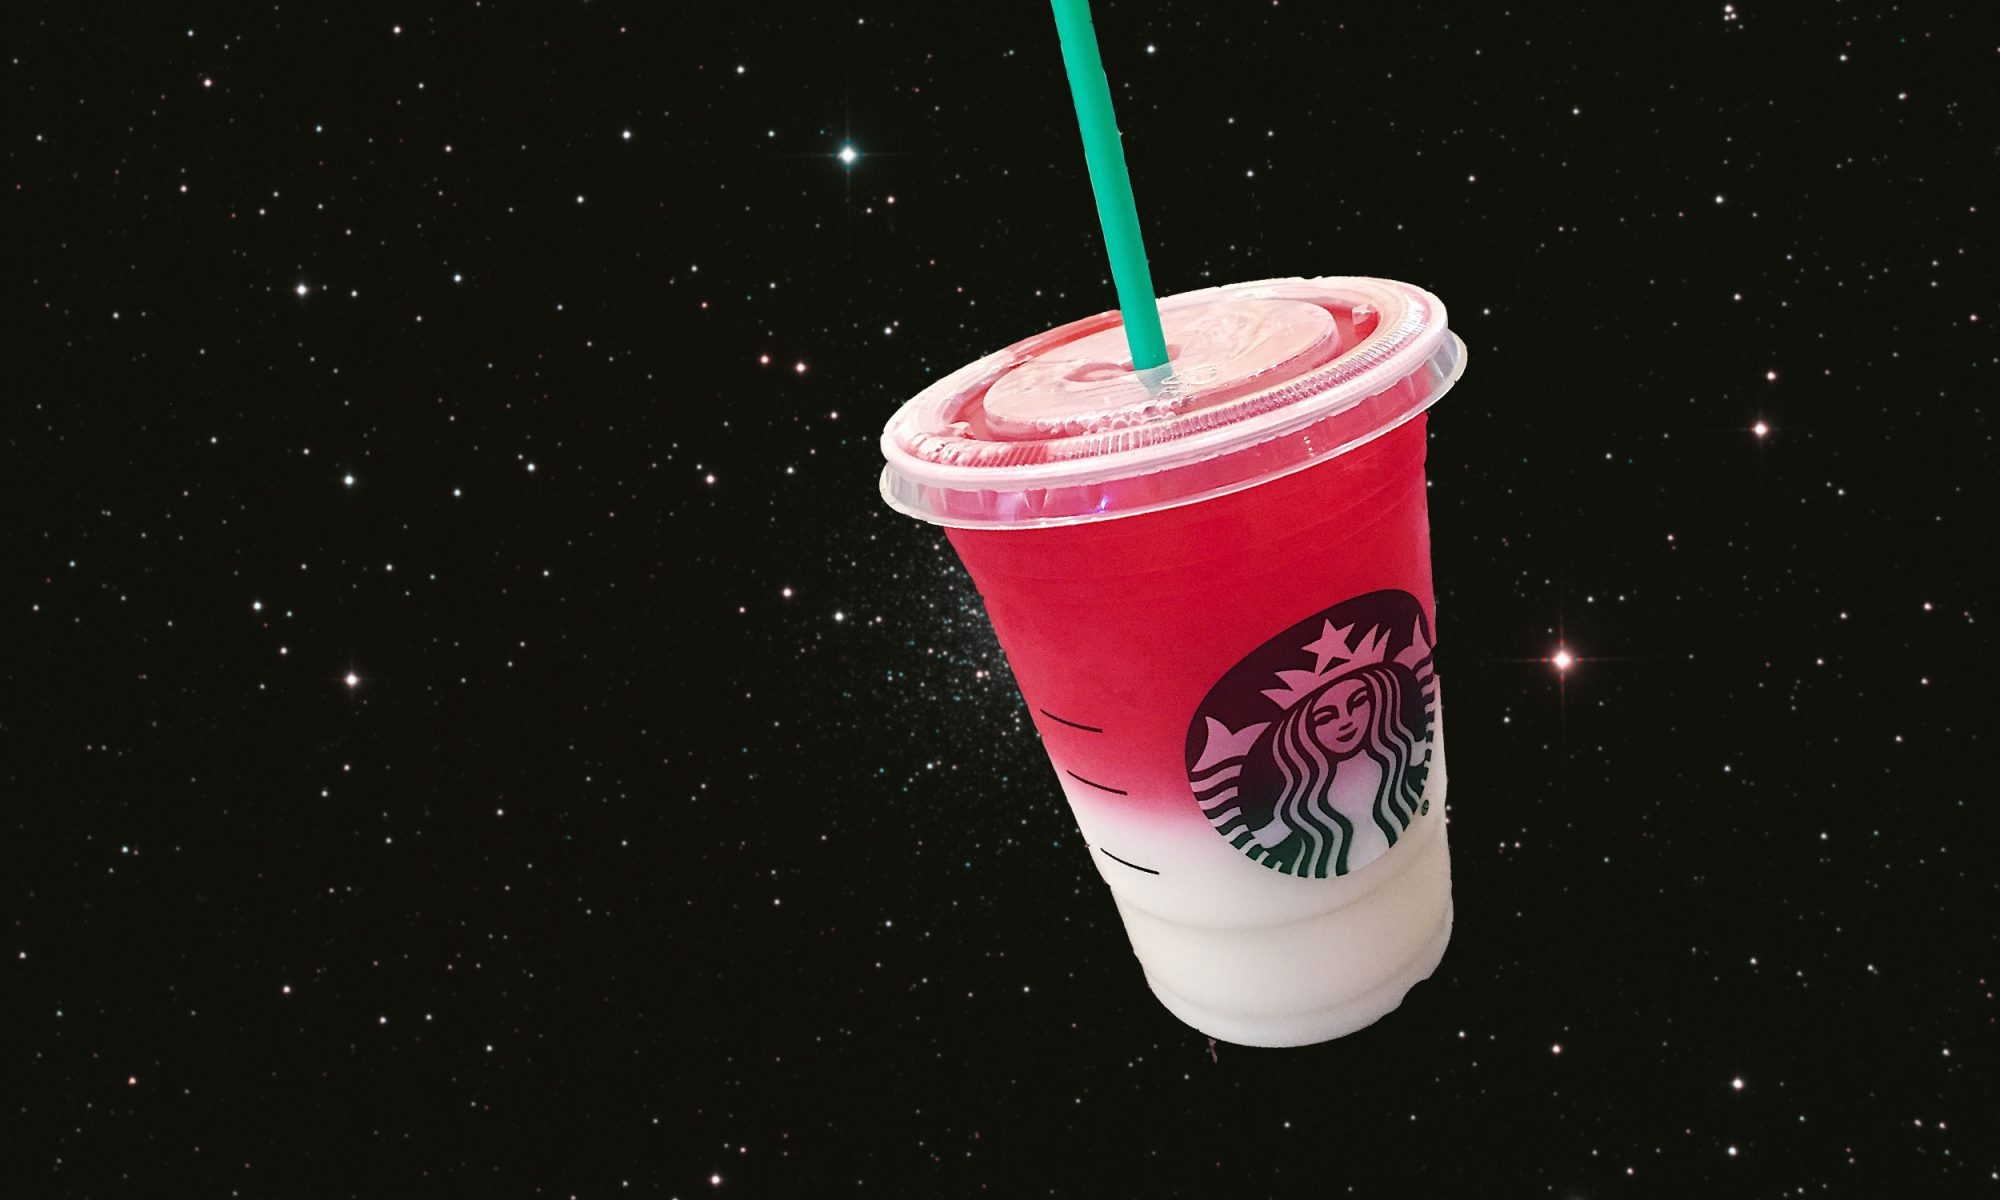 EC: The New Starbucks Ombre Pink Drink Looks Good But Tastes Meh